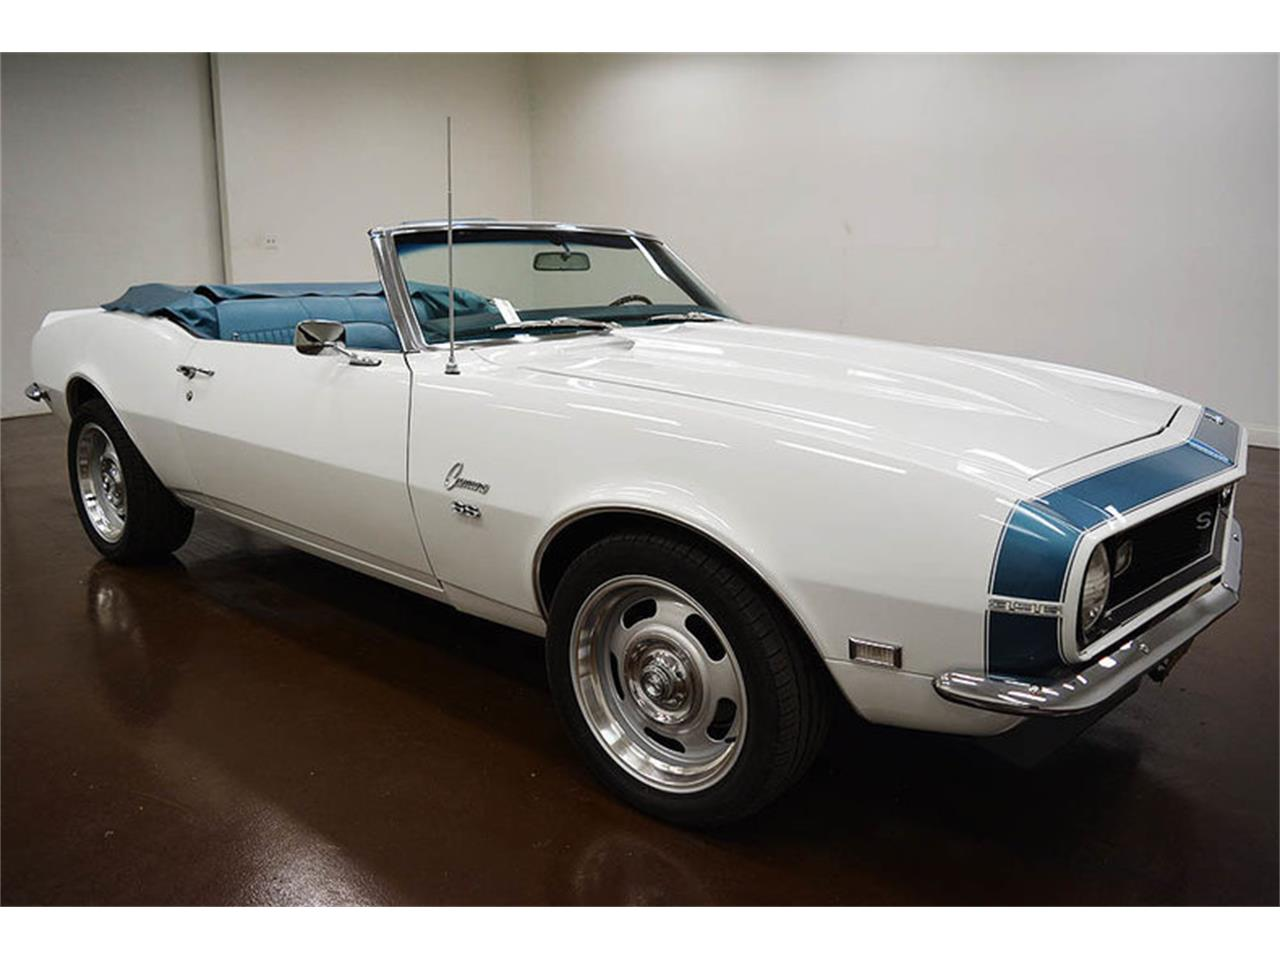 Find Every Shop In The World Selling 1968 Chevrolet Camaro Z 28 Cc1051930 10901 435988 123678n435988